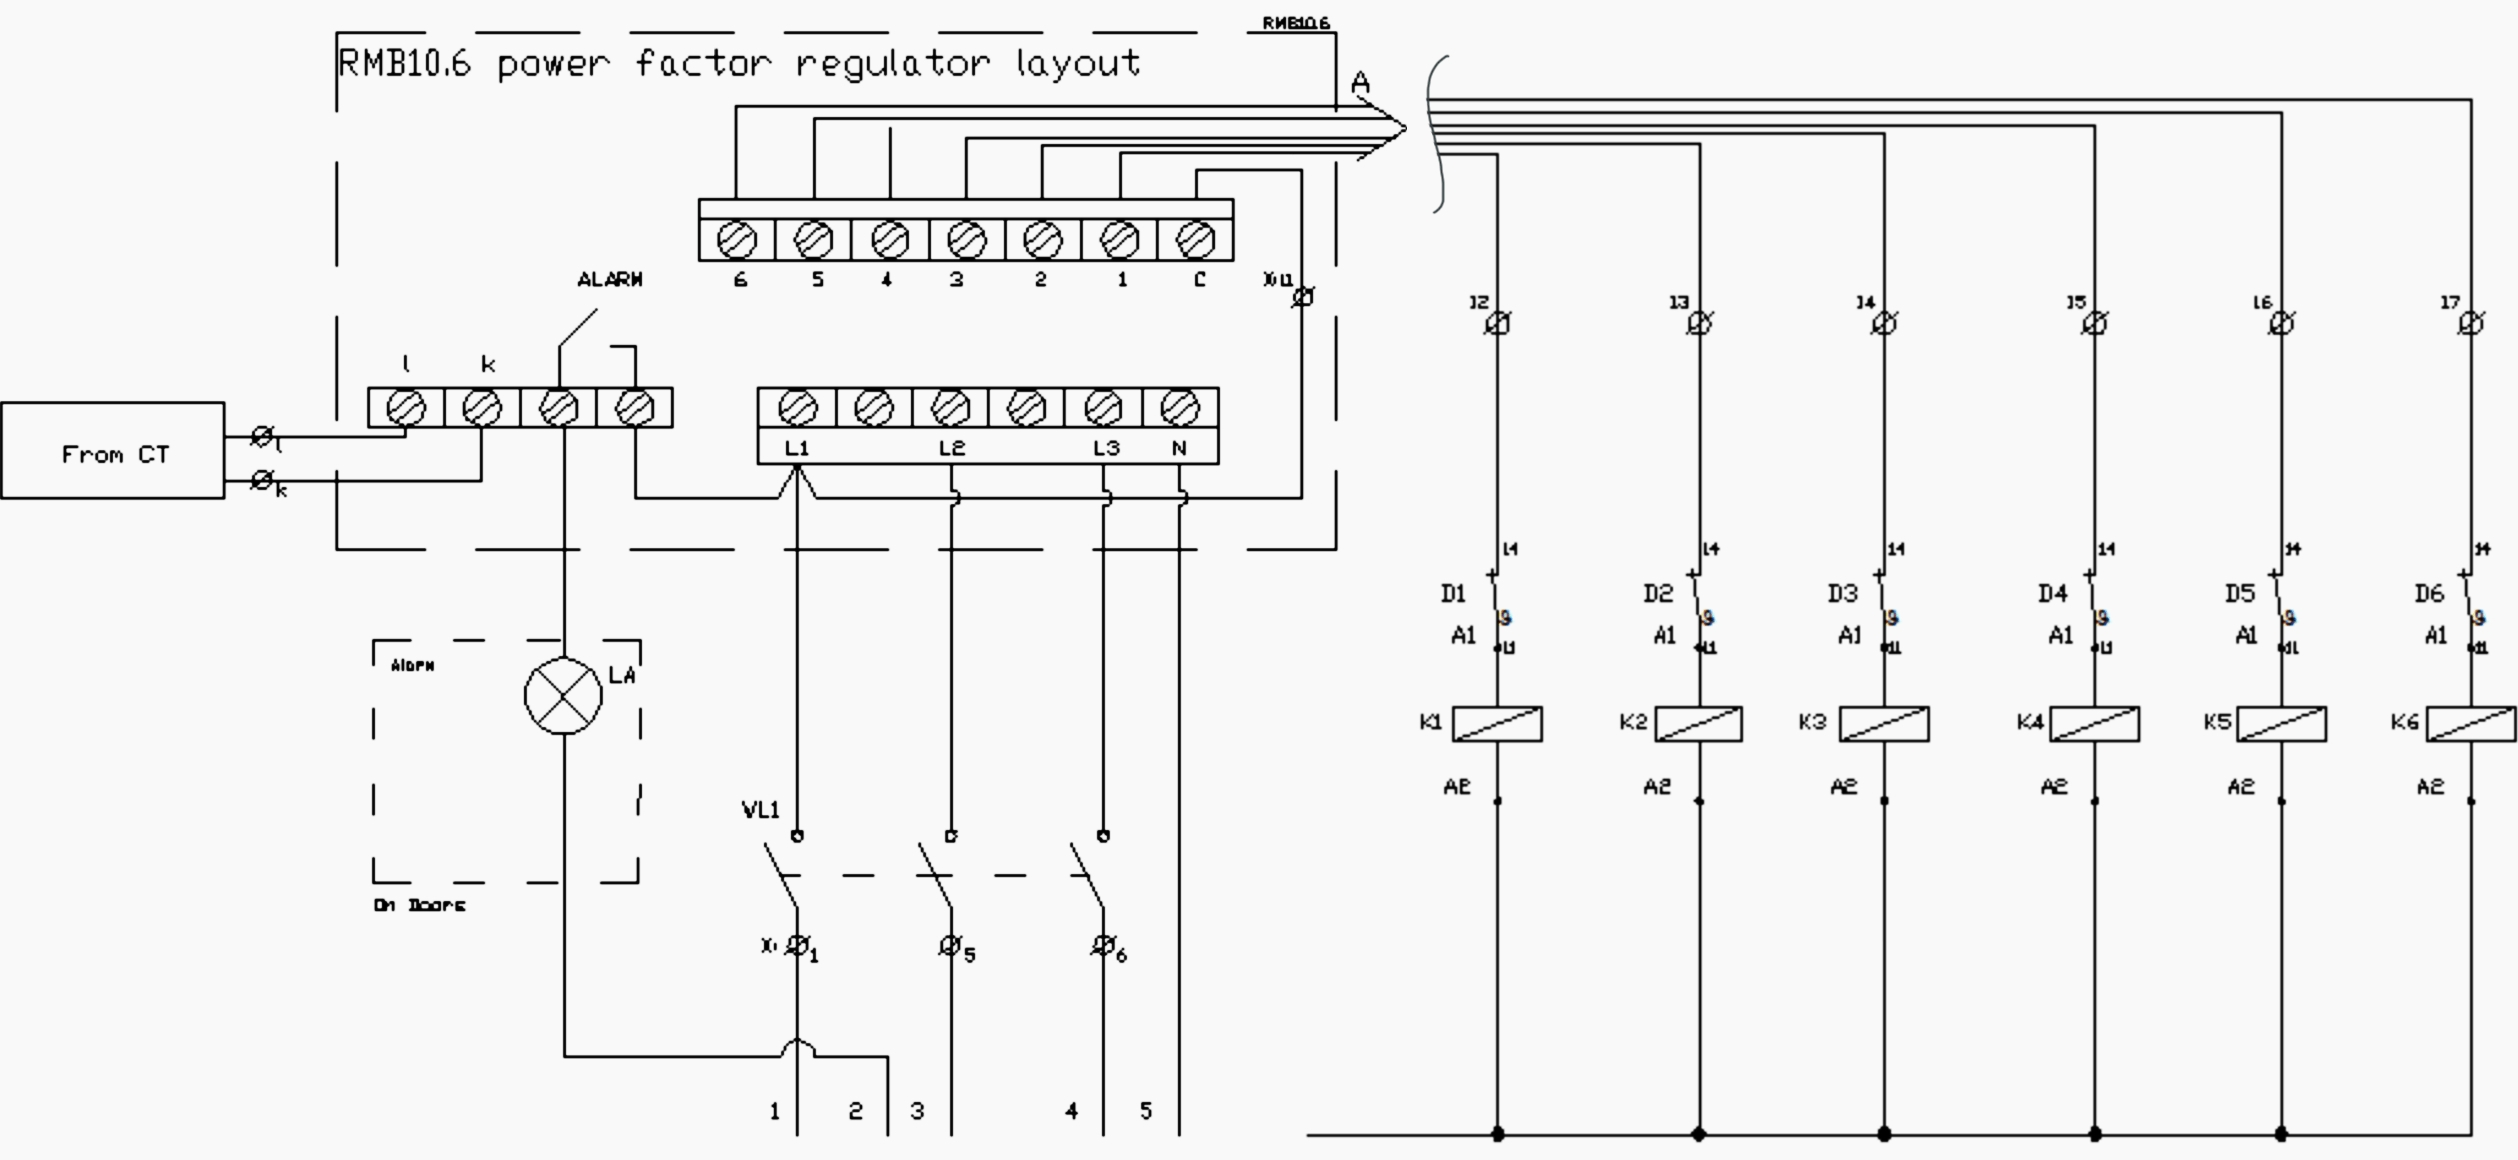 3 phase capacitor bank wiring diagram Download-3 Phase Capacitor Bank Wiring Diagram Wiring Capacitor Bank Control Circuit 19-p